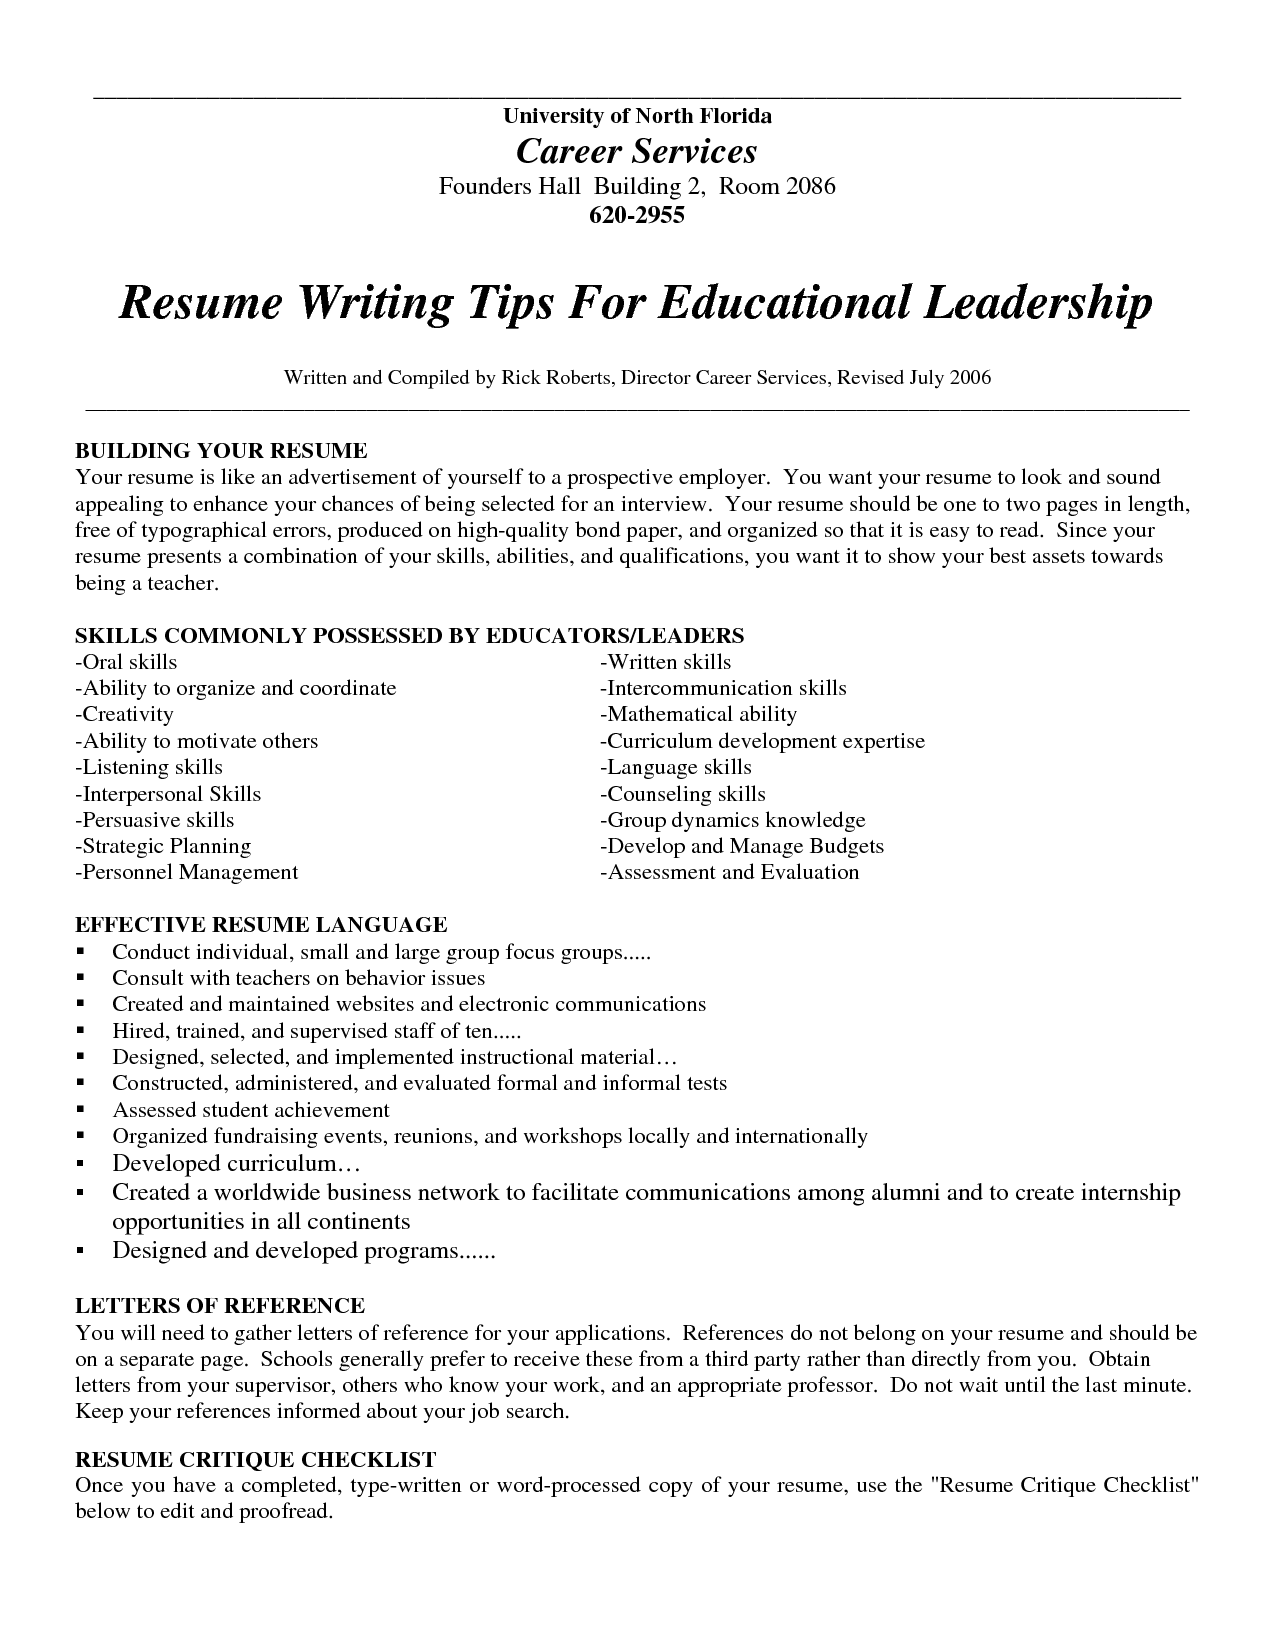 100 free resume writer free resume writing services the - Resume Online Builder Free